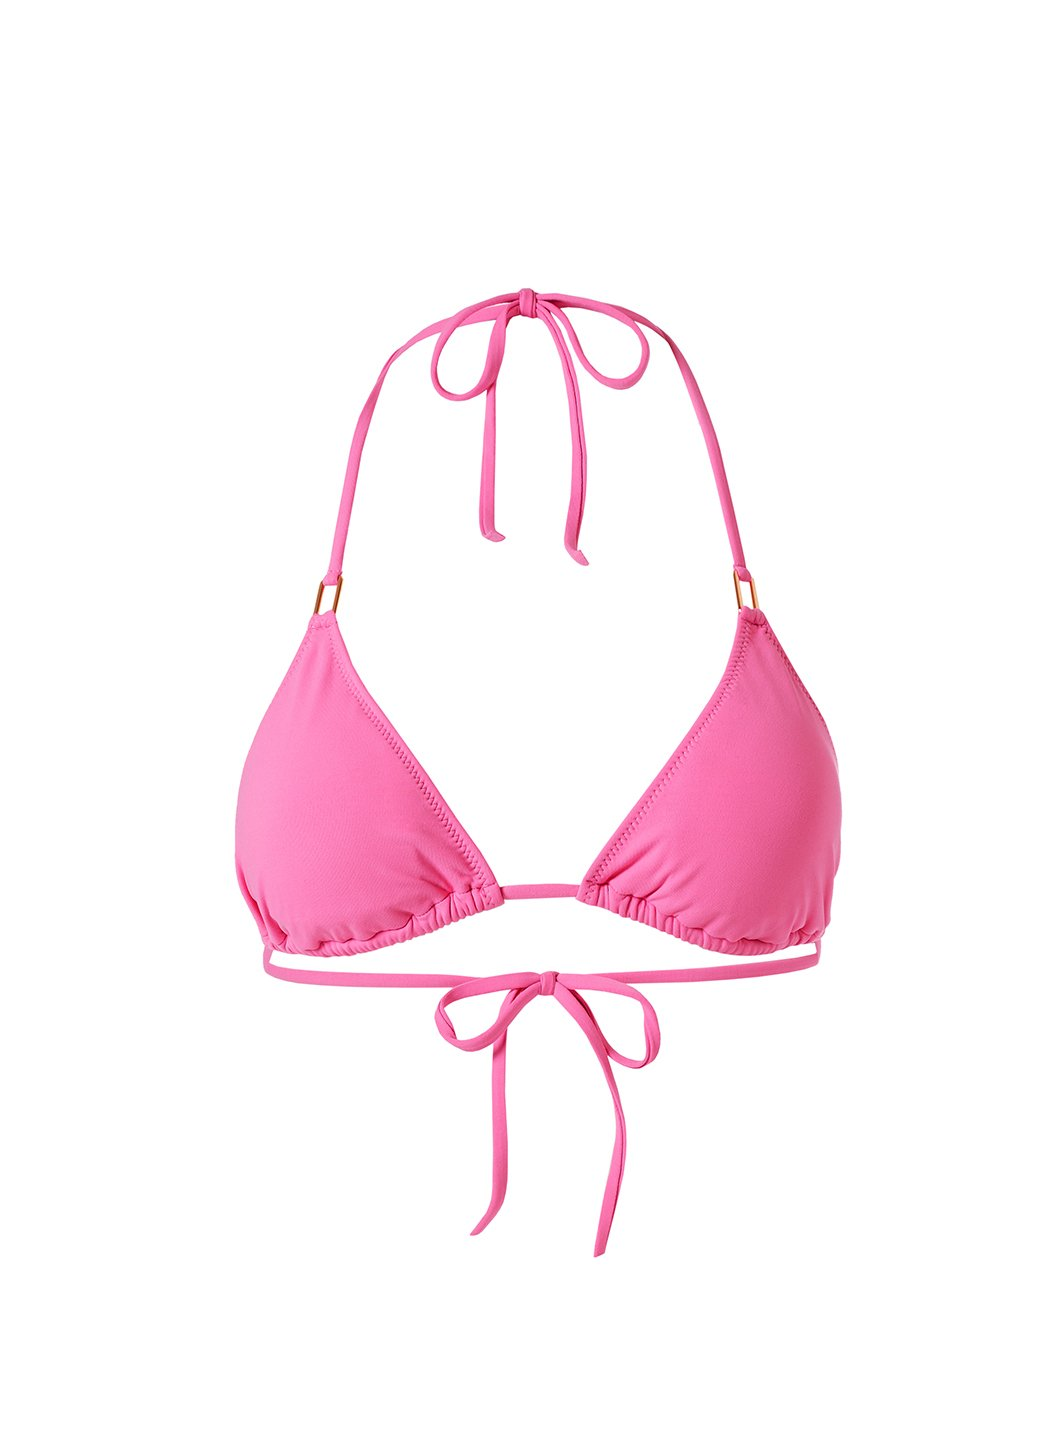 Cancun Flamingo Bikini Top Cutout